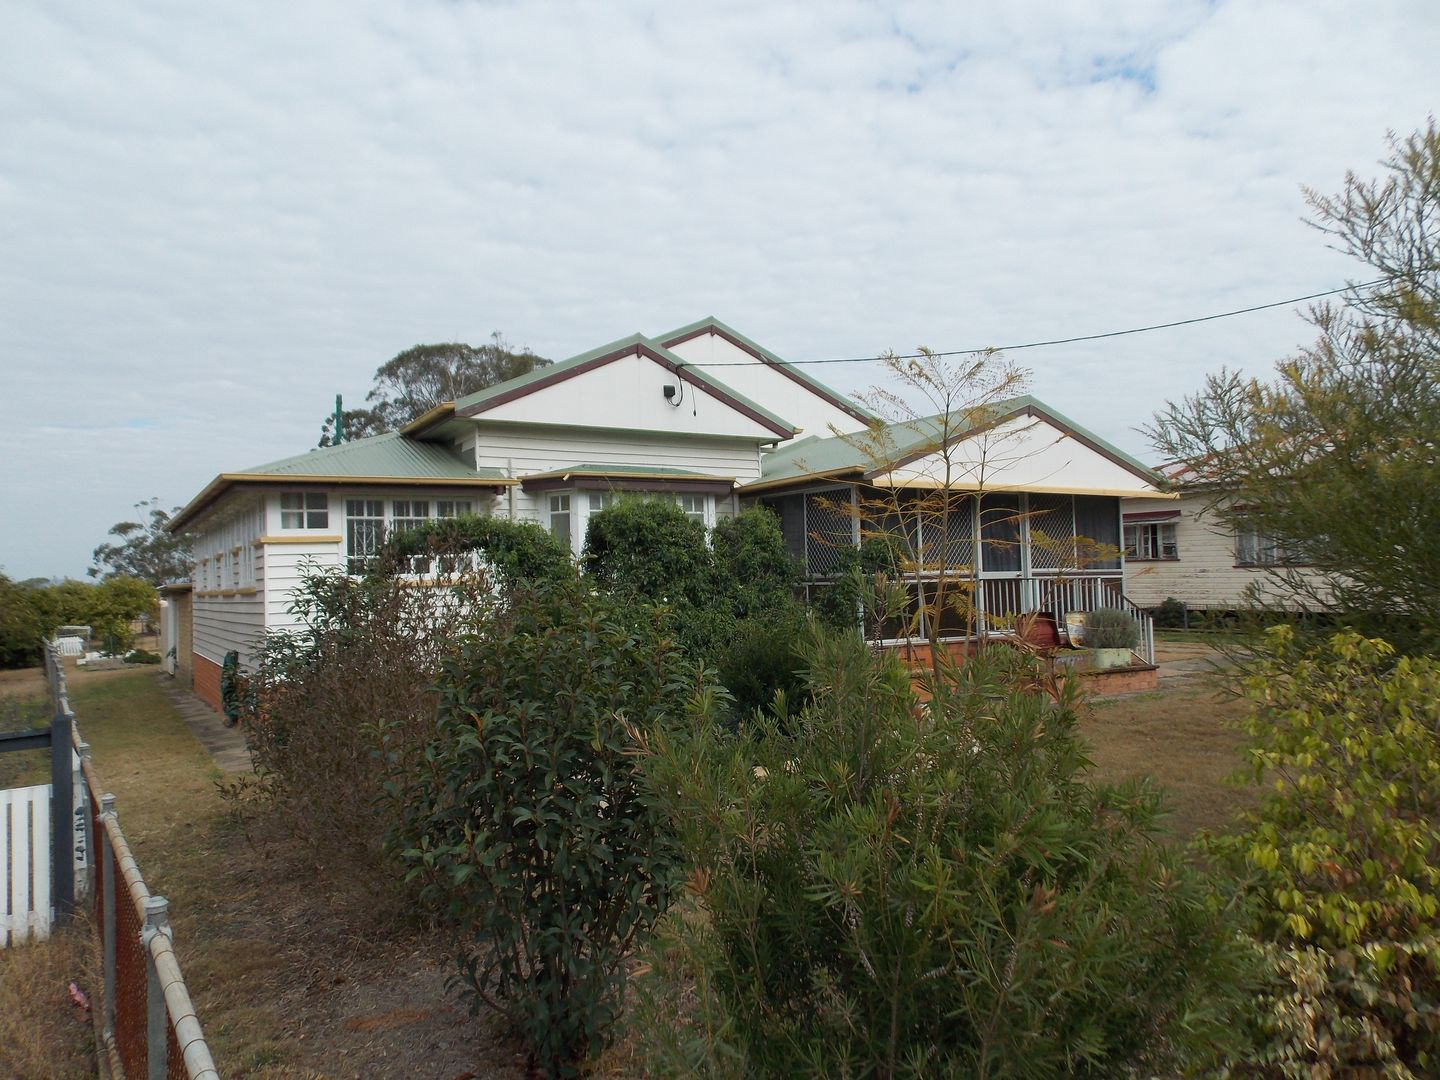 68 Albert St, Rosewood QLD 4340 - House For Rent - $330